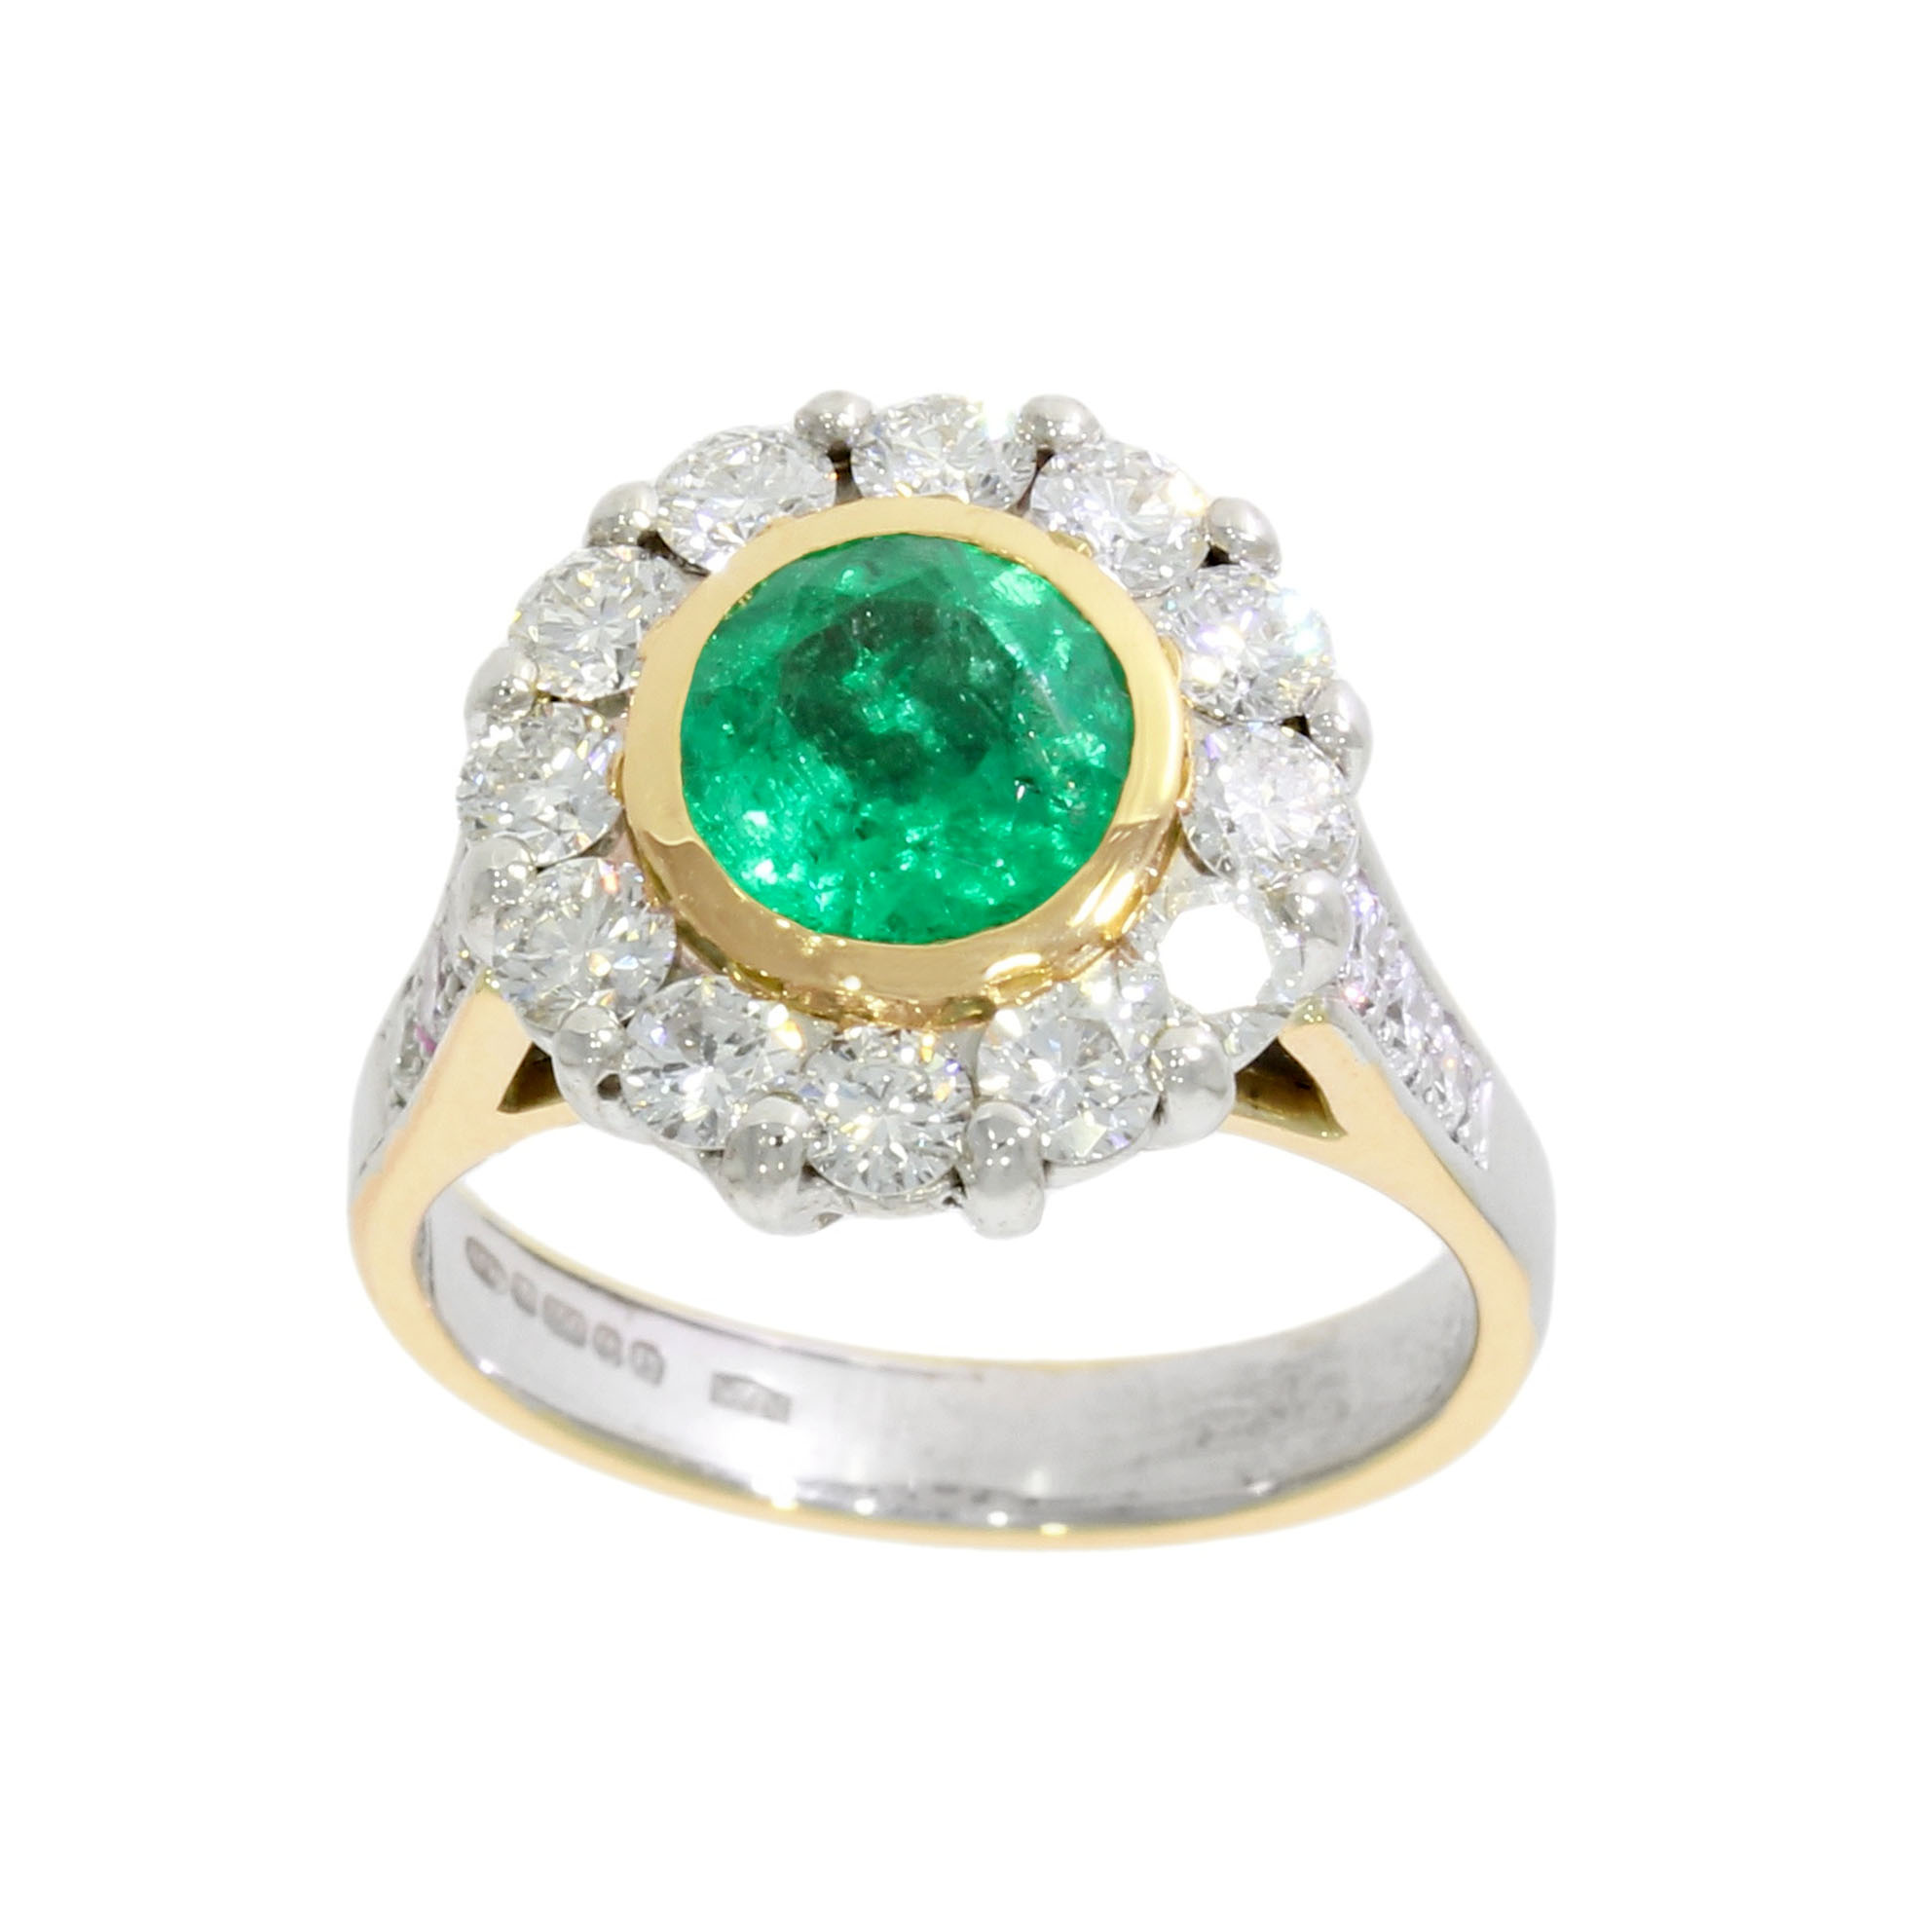 18ct Yellow & White Emerald & Diamond Ring